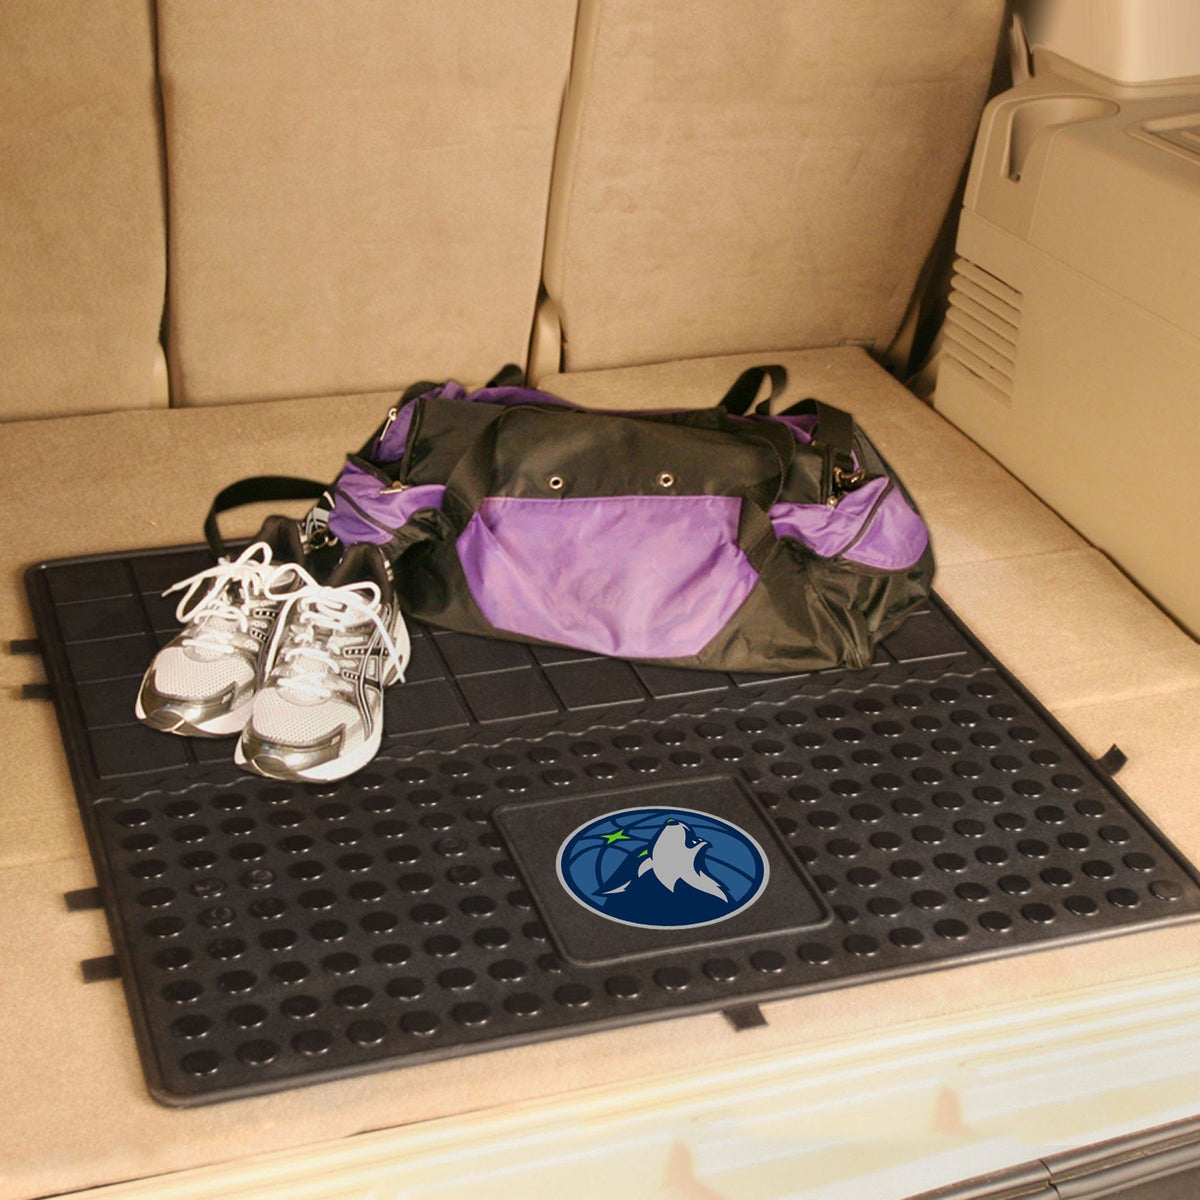 NBA - Heavy Duty Vinyl Cargo Mat NBA Mats, Trunk Mats, Heavy Duty Vinyl Cargo Mat, NBA, Auto Fan Mats Minnesota Timberwolves